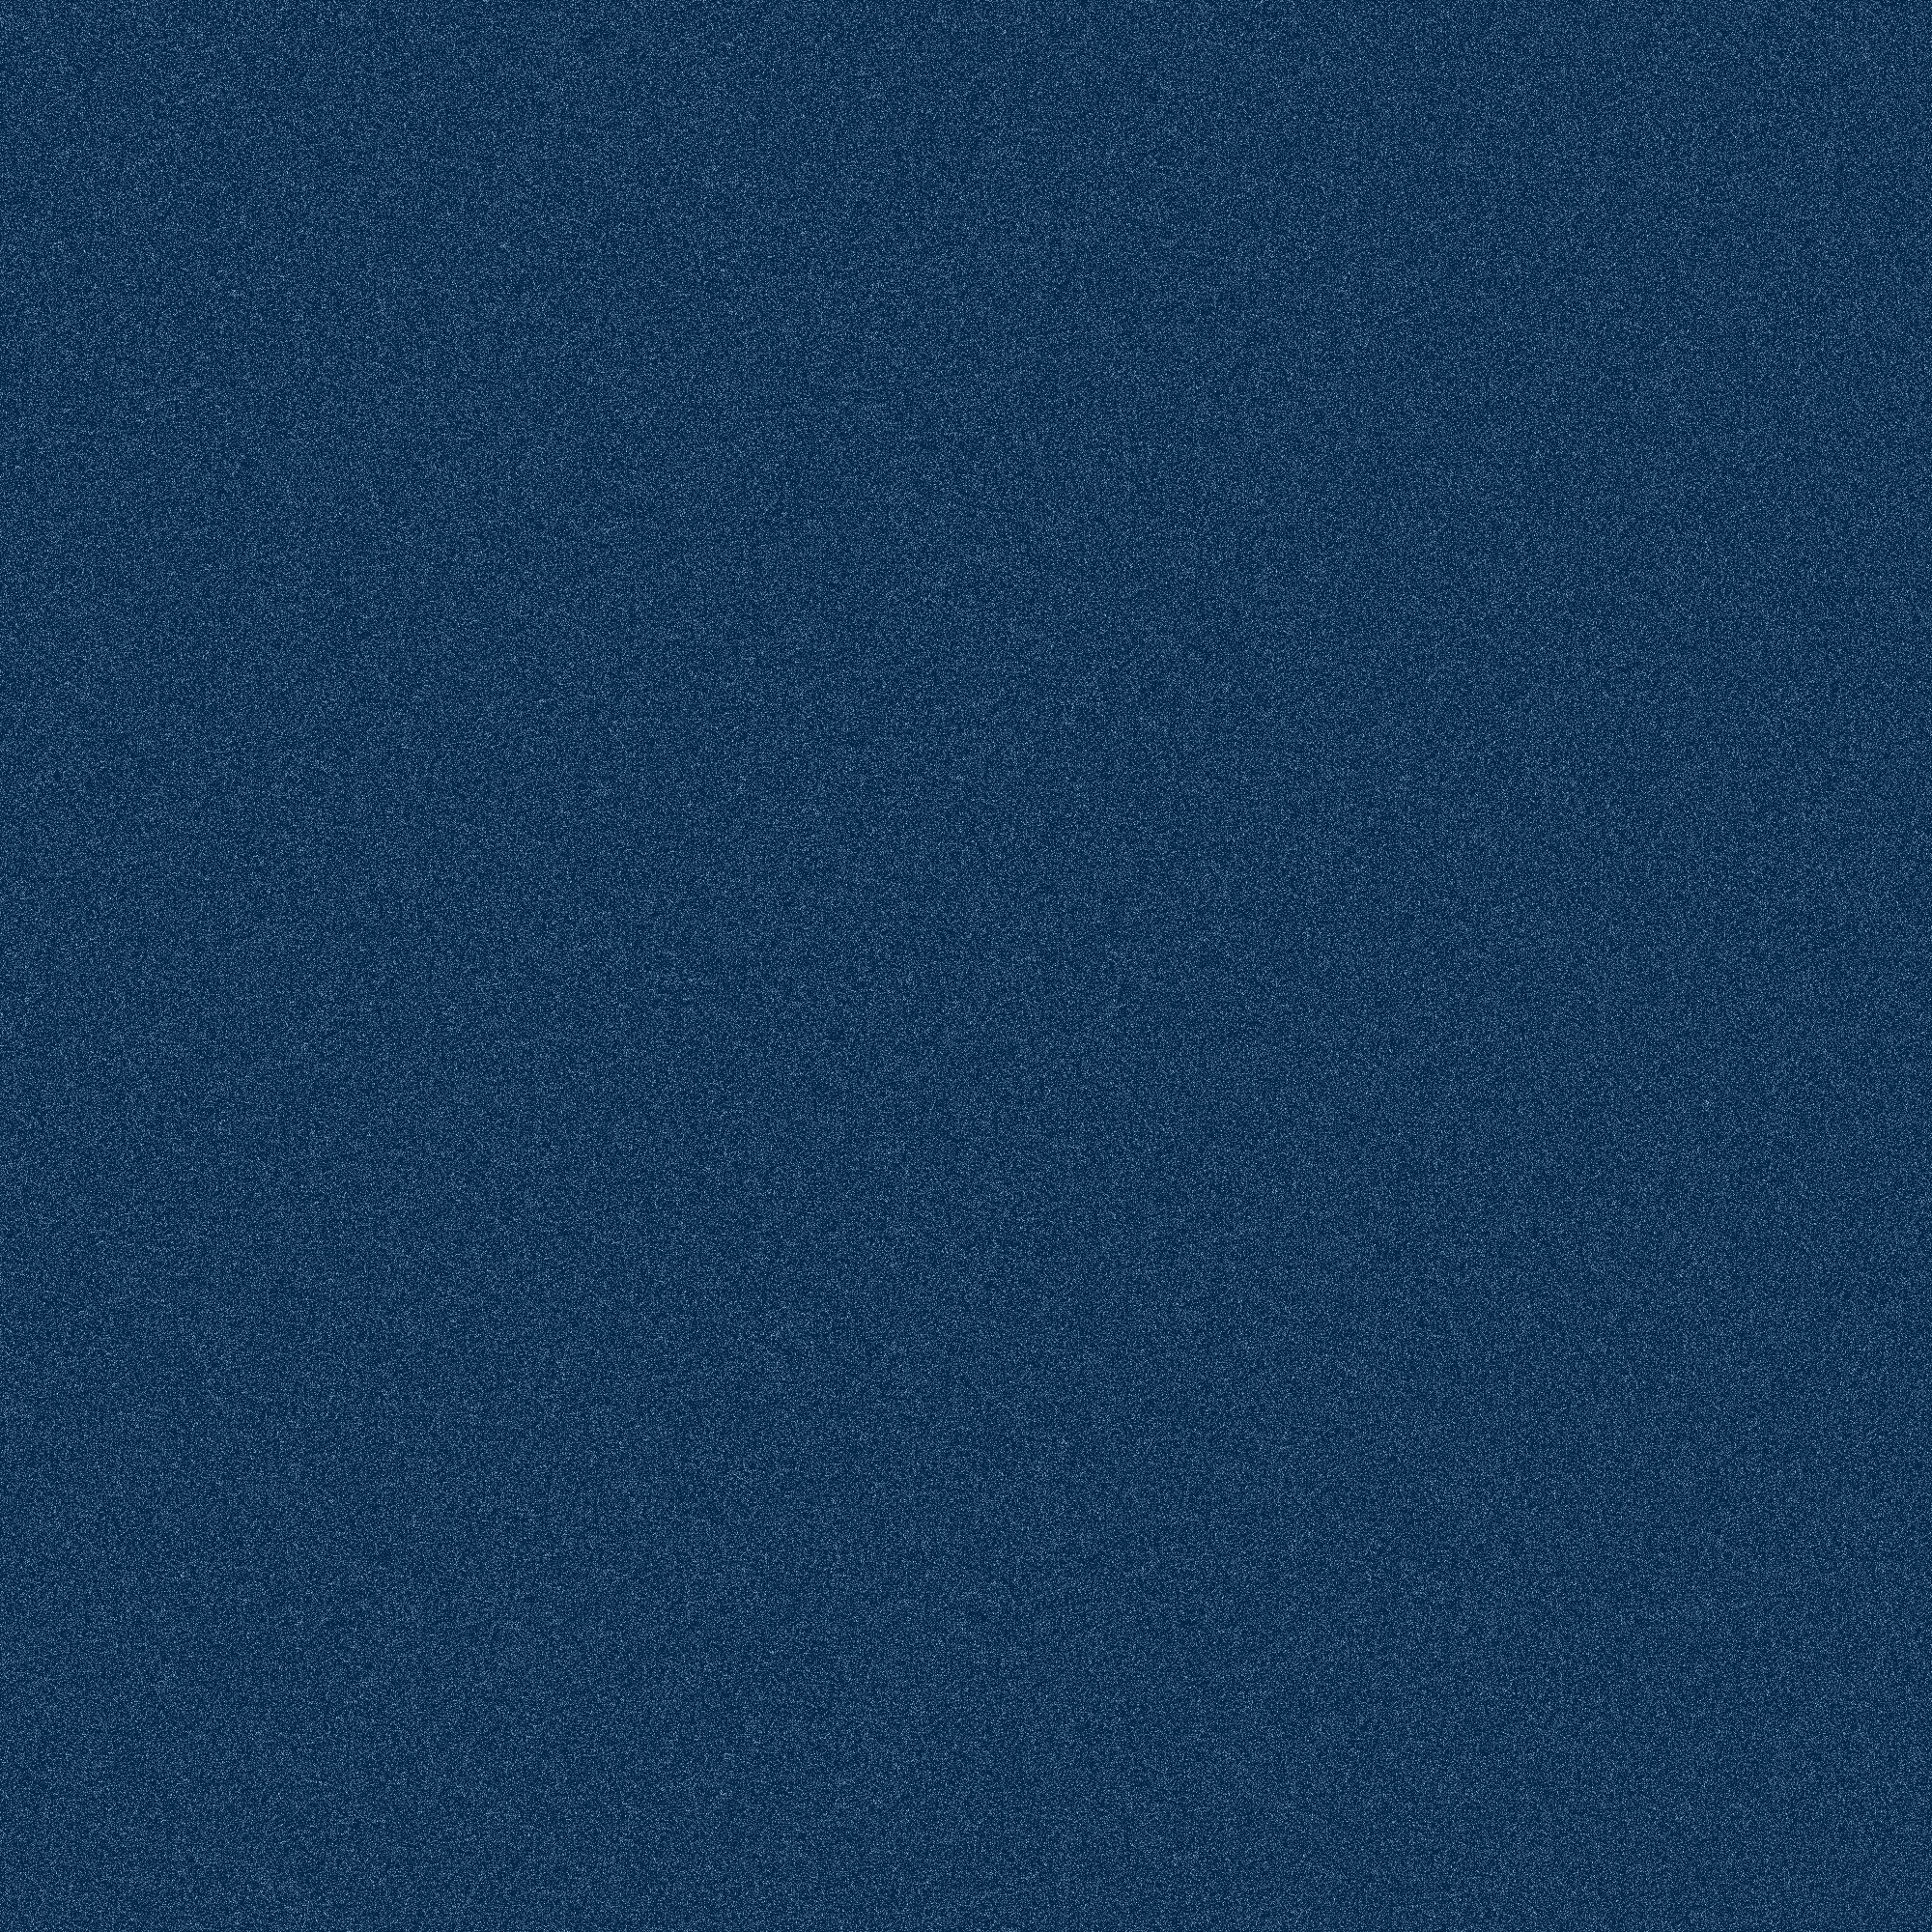 """Navy blue"" Noise background texture 